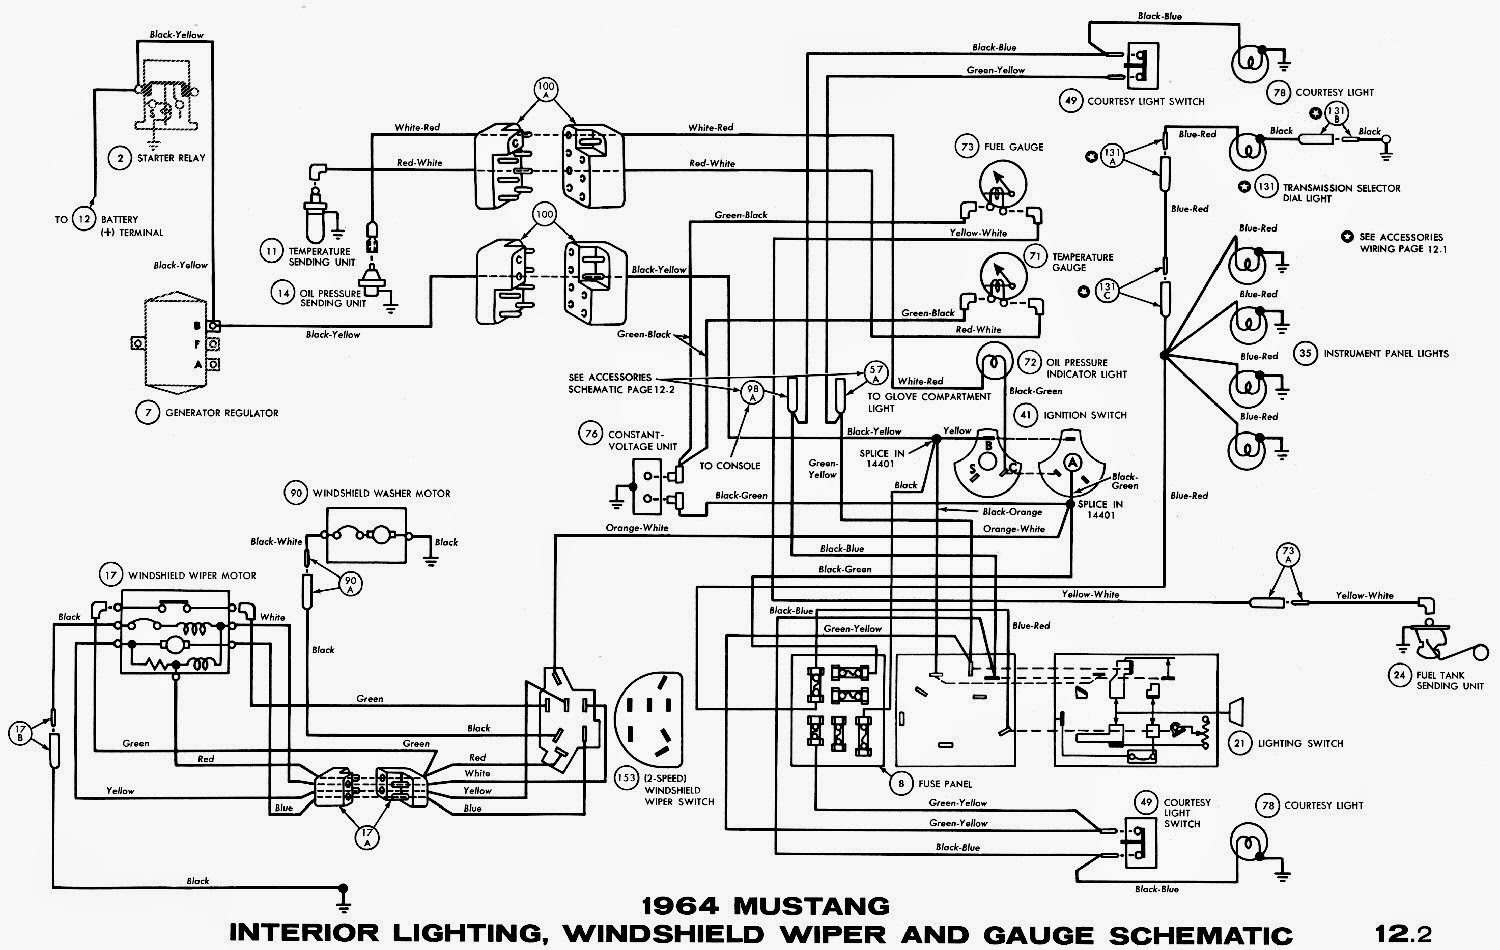 1971 gto wiring diagram free download wiring diagram and circuit